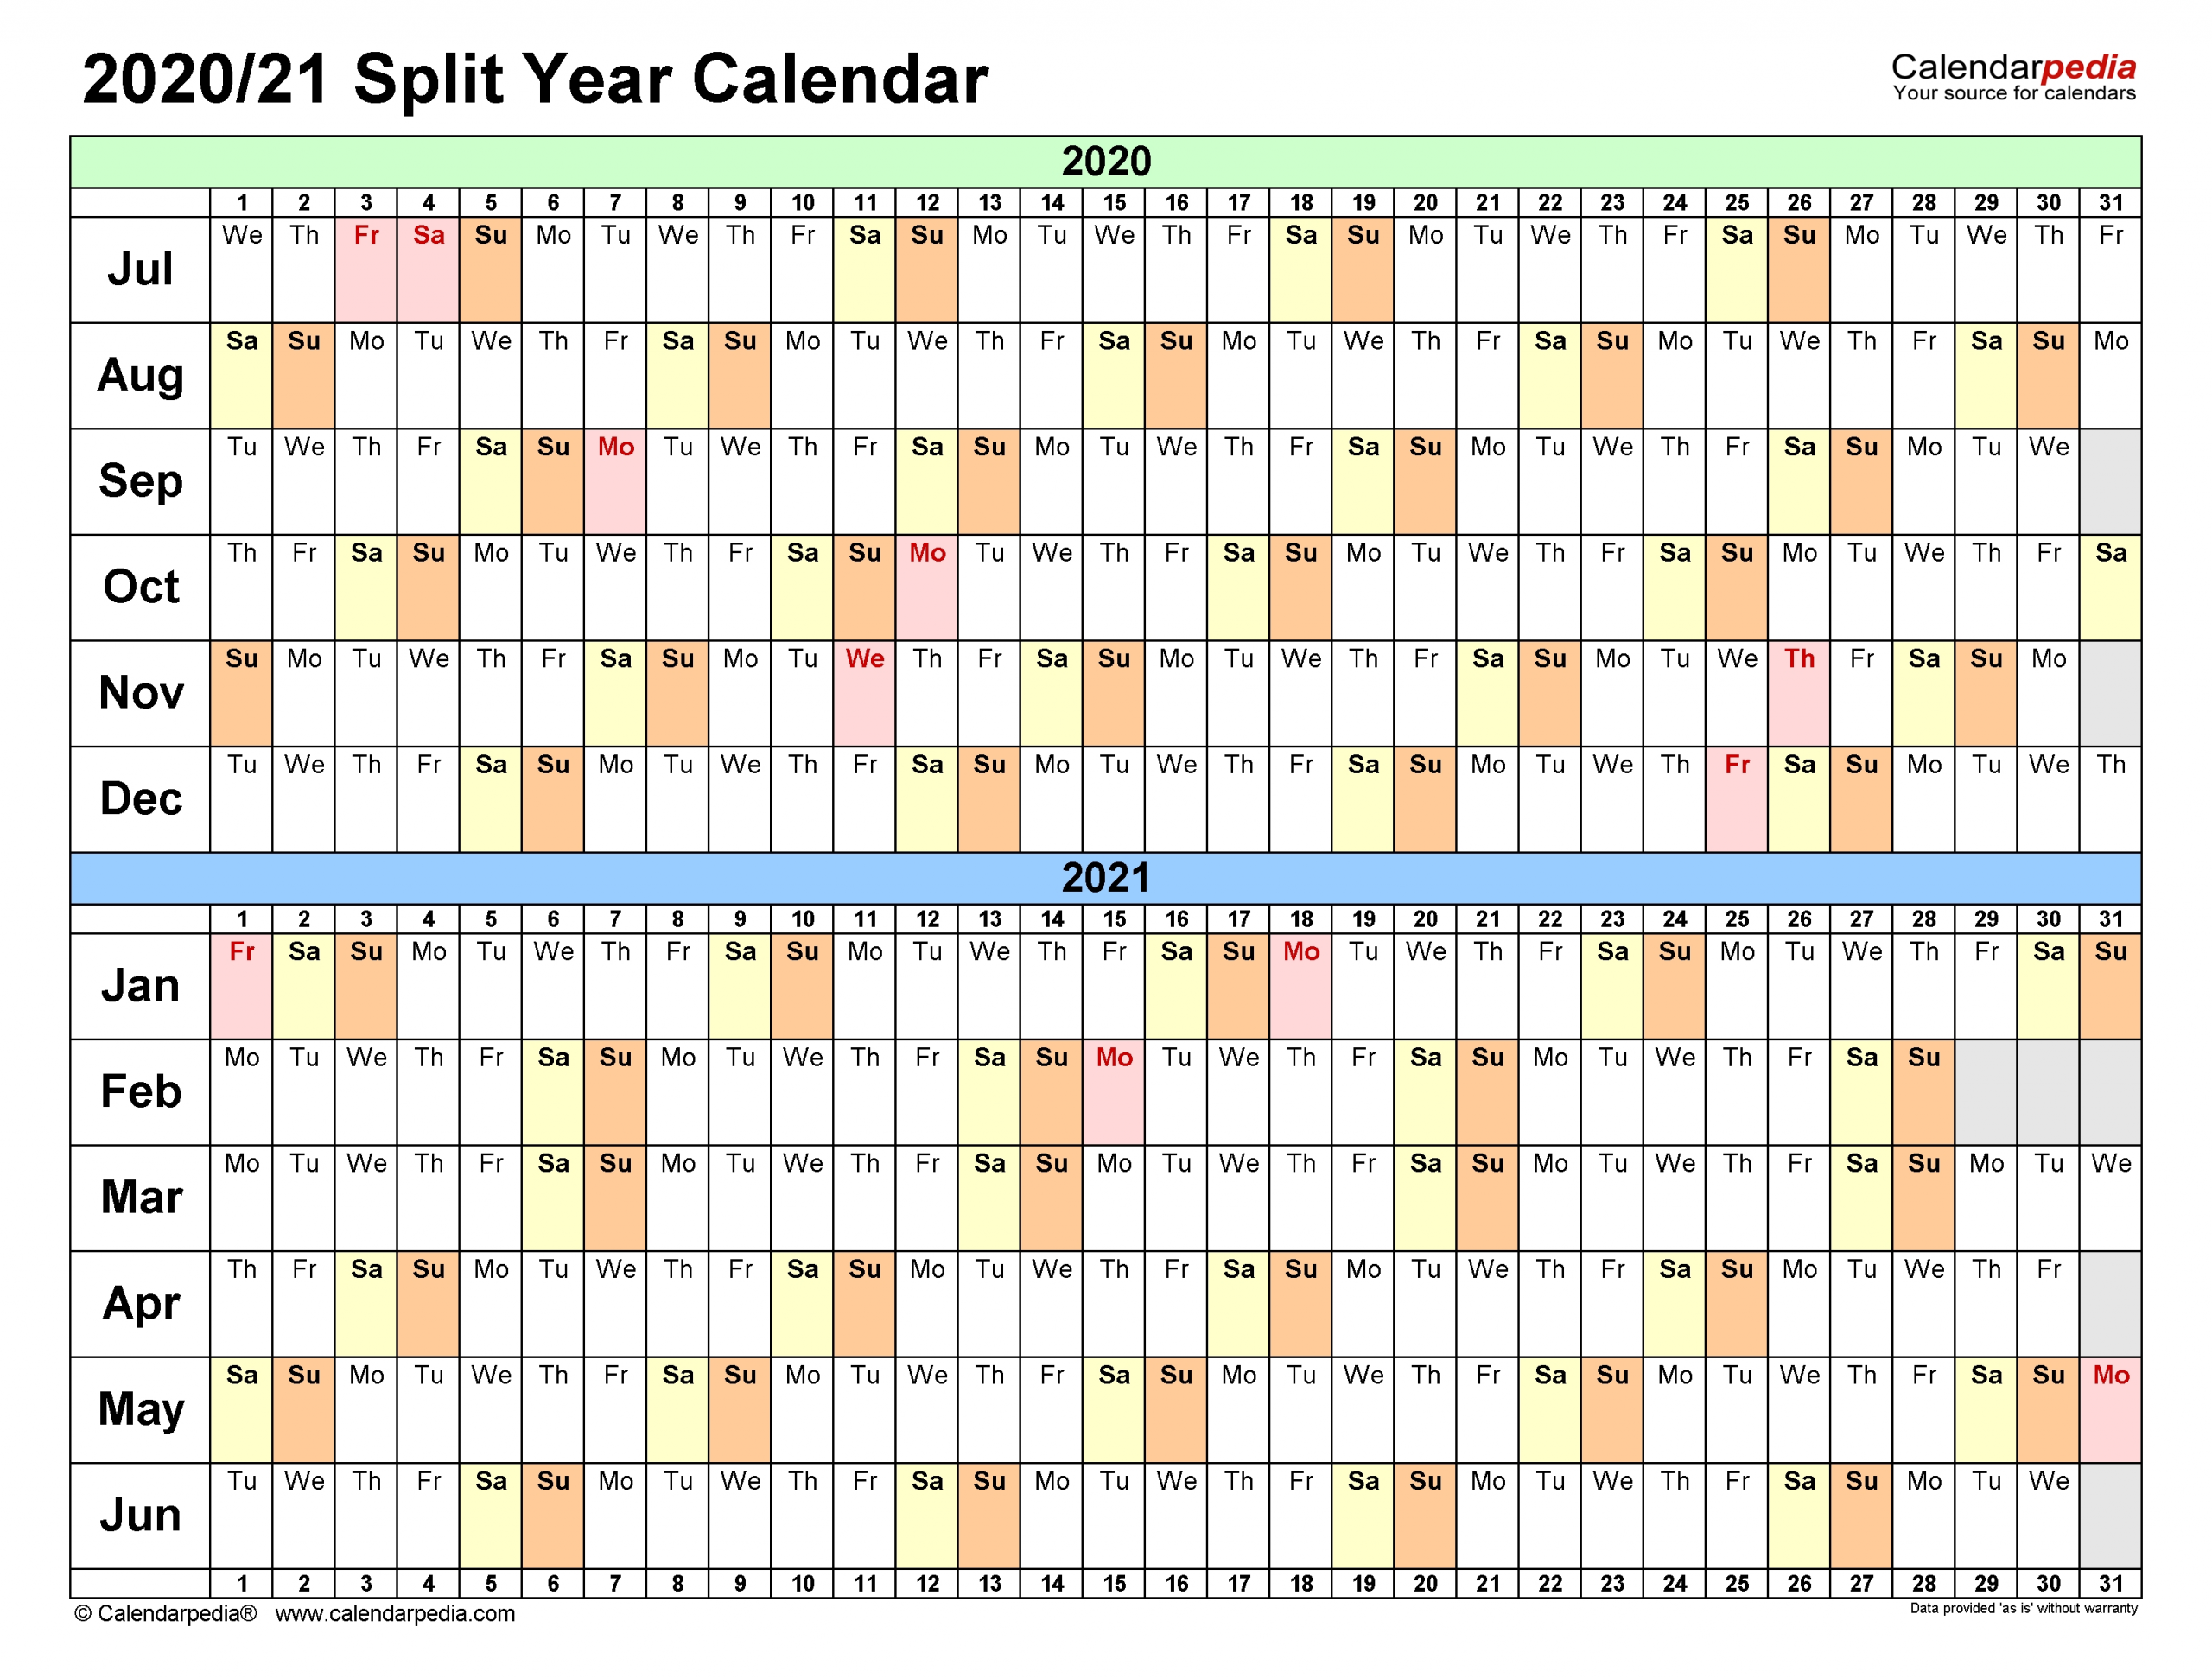 Split Year Calendars 2020/2021 (July To June) - Word Templates  Free Printable 2021/21 Split Year Calendar